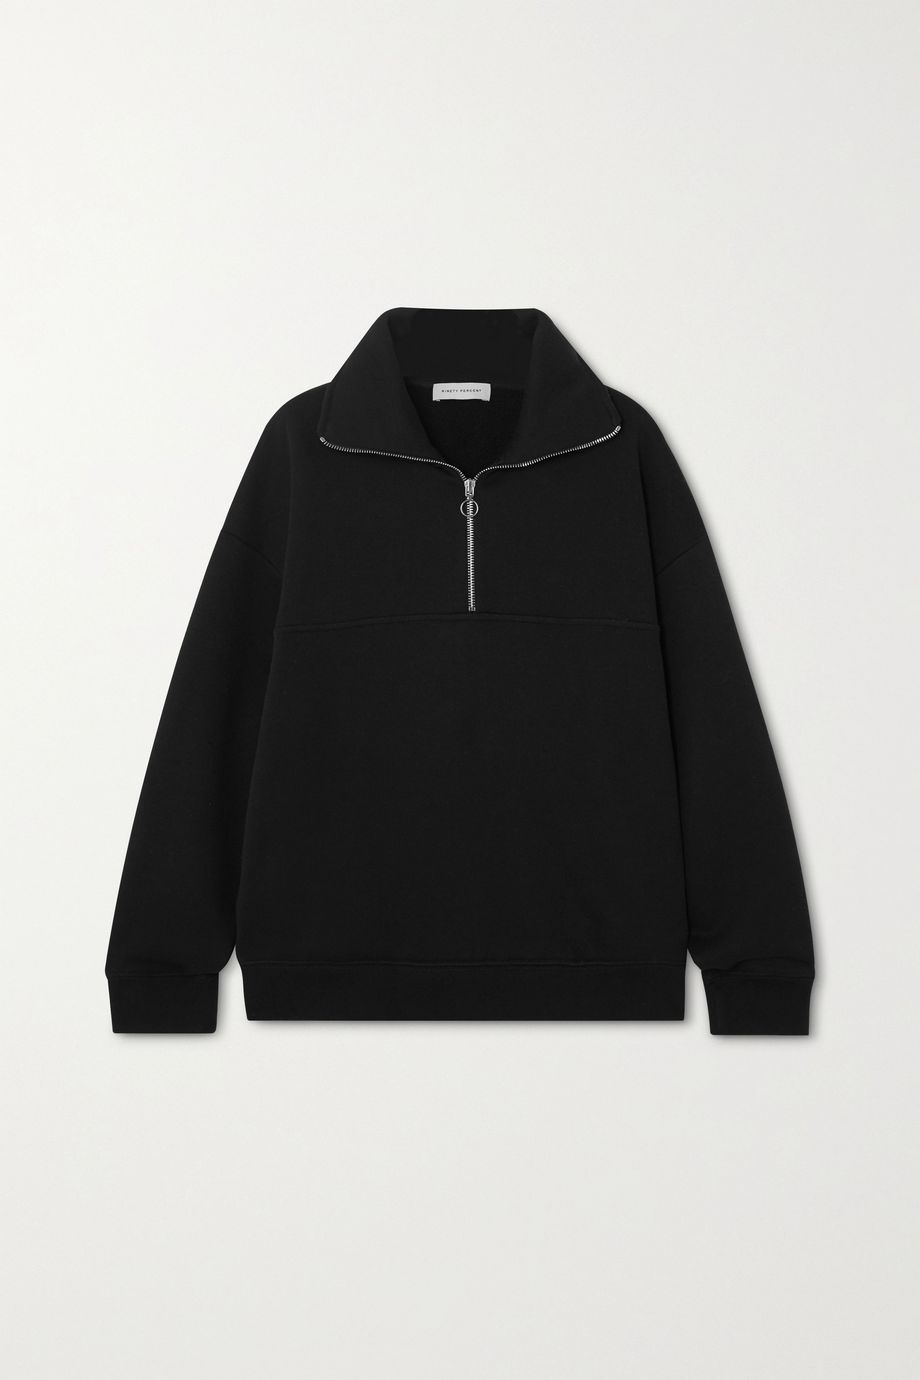 Ninety Percent + NET SUSTAIN organic cotton-jersey sweatshirt